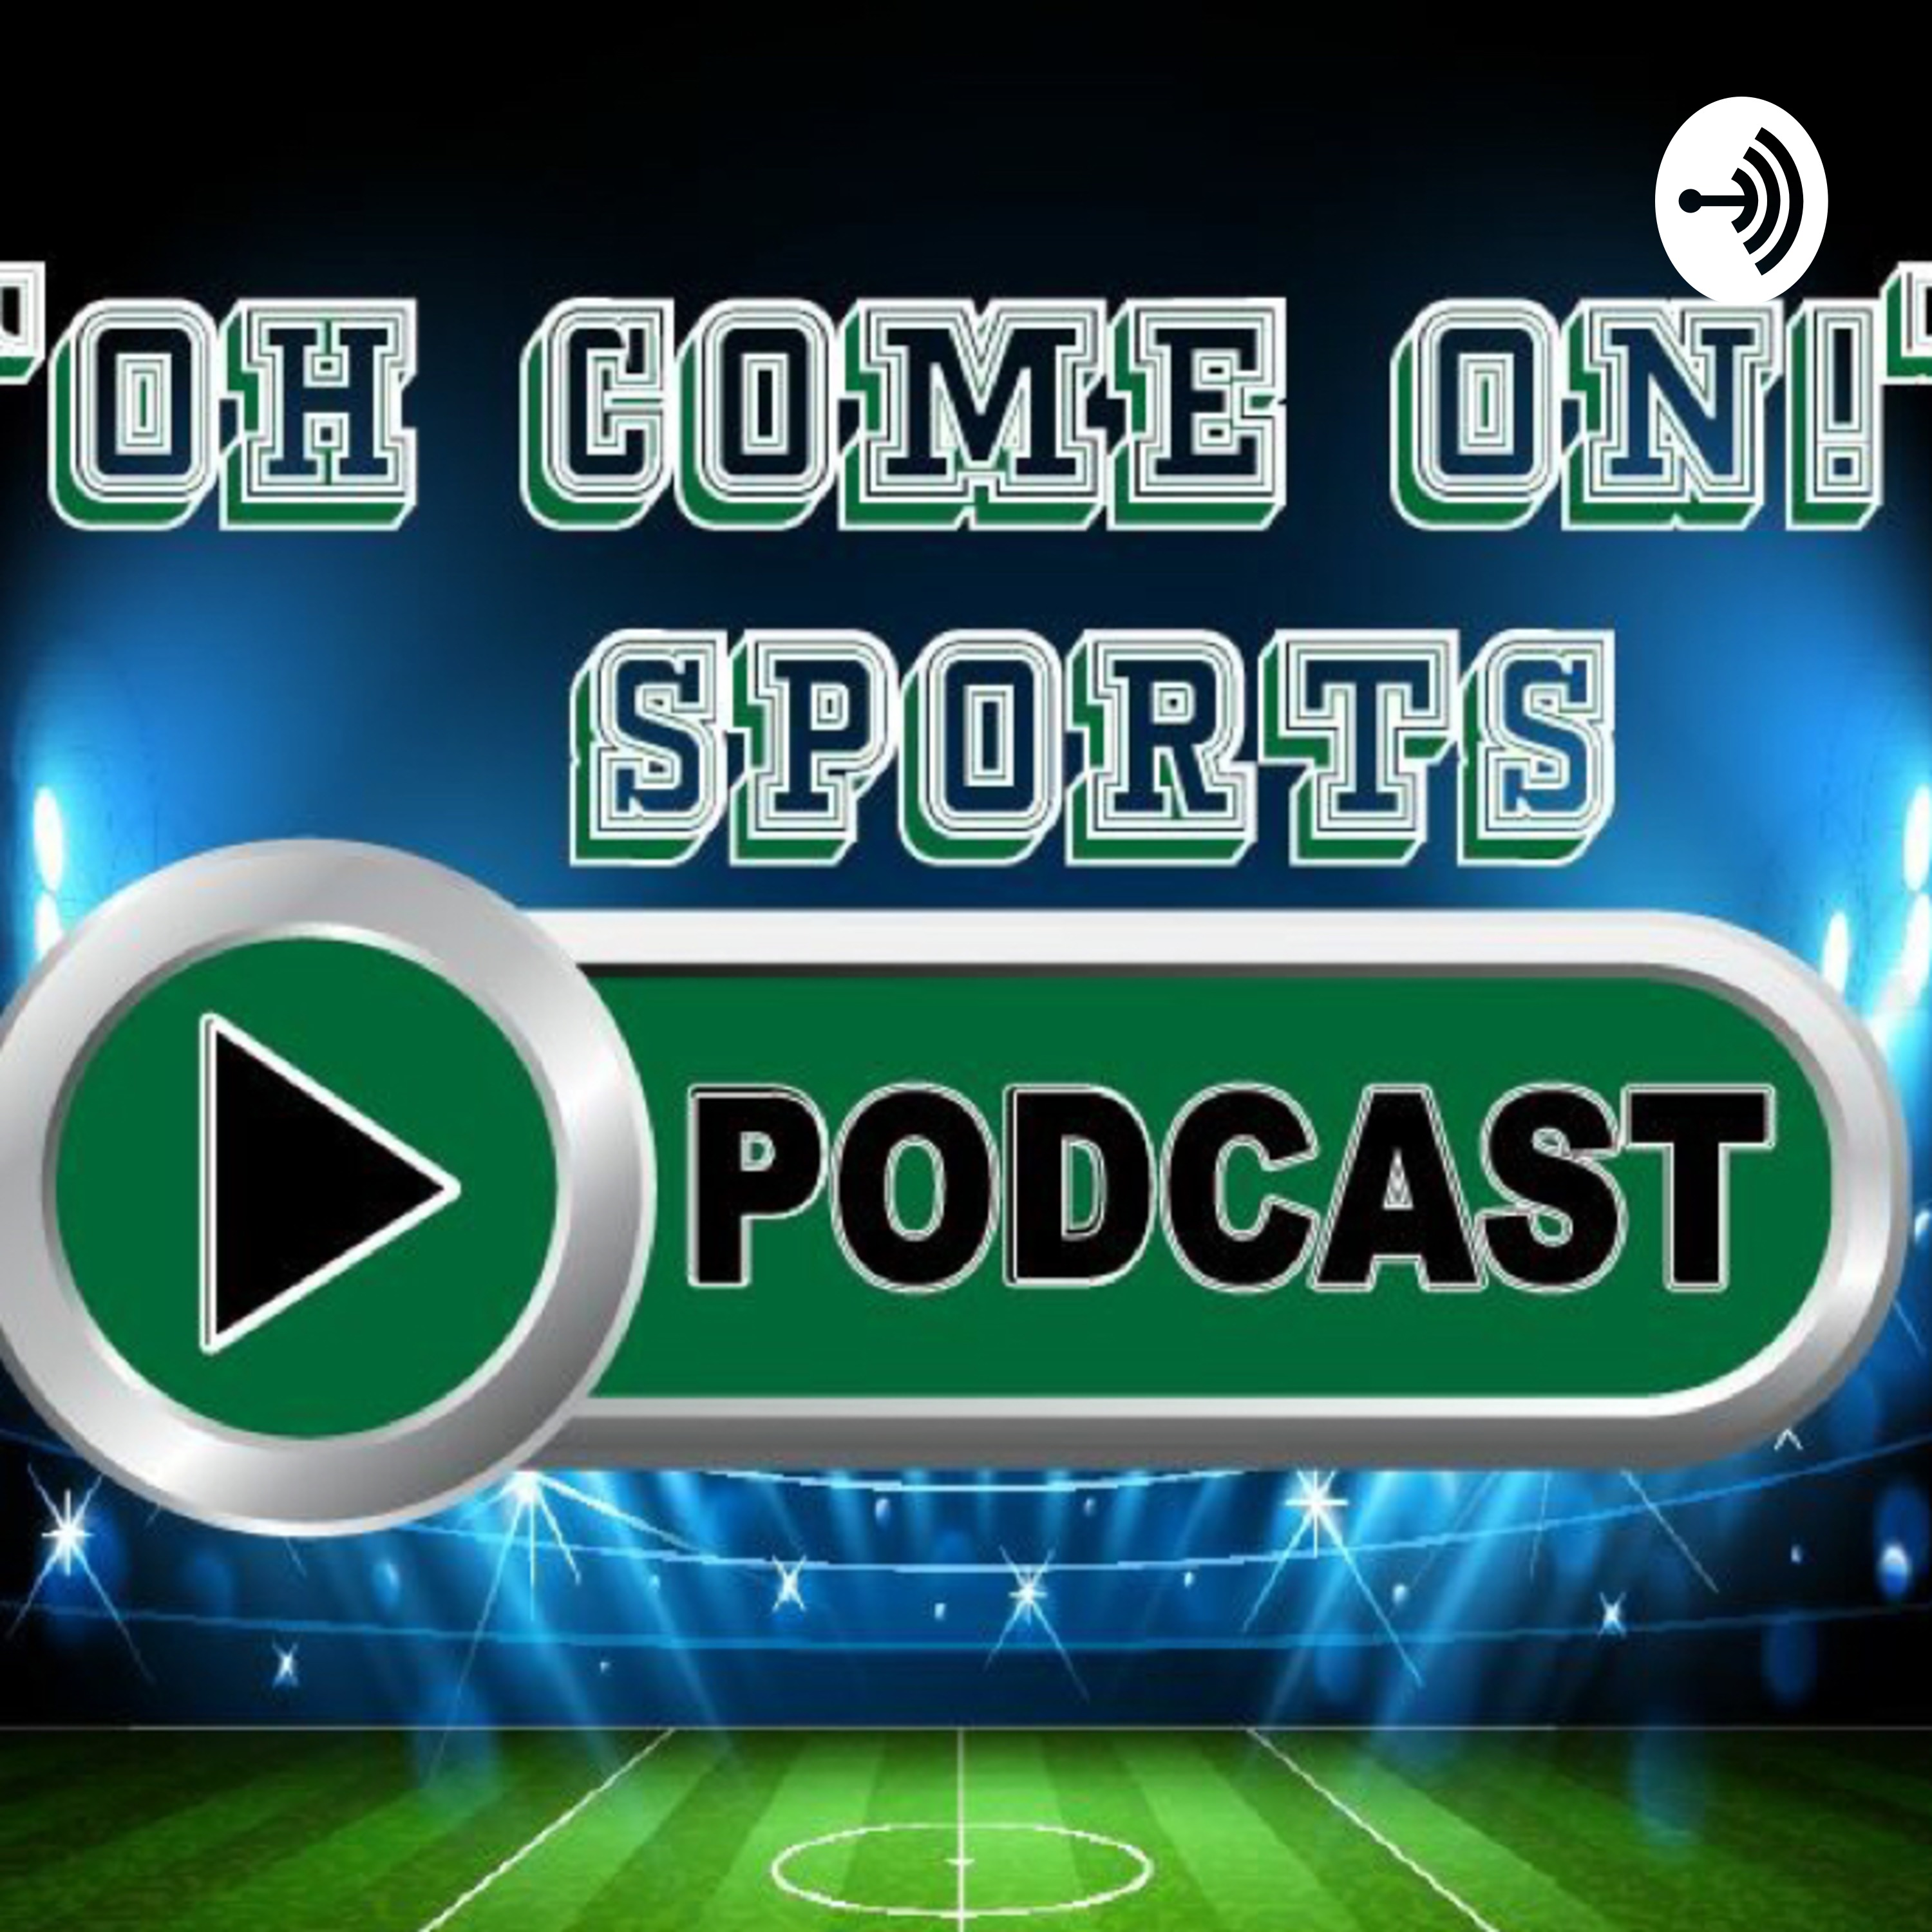 Oh Come On! Sports Podcast with Mike and Jesse • A podcast